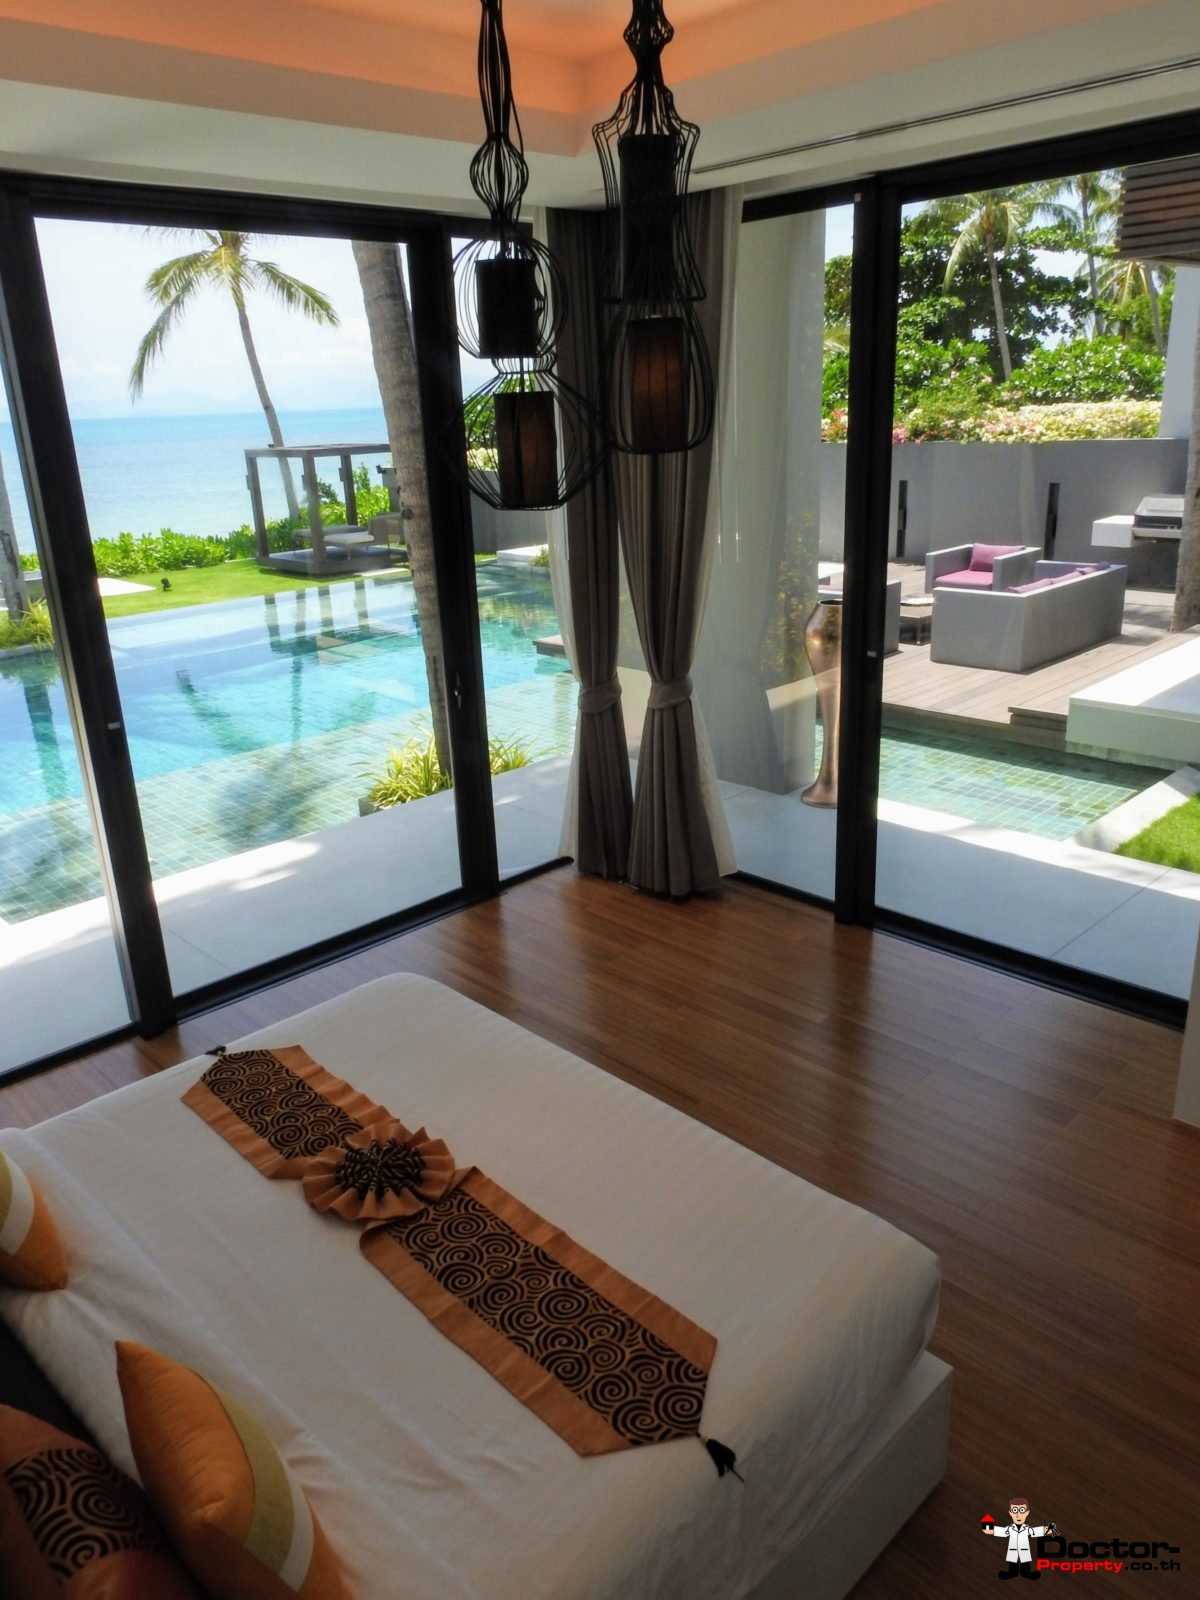 Beachfront Luxury 3 Bedroom Villa in Bang Por - Koh Samui - for sale 14